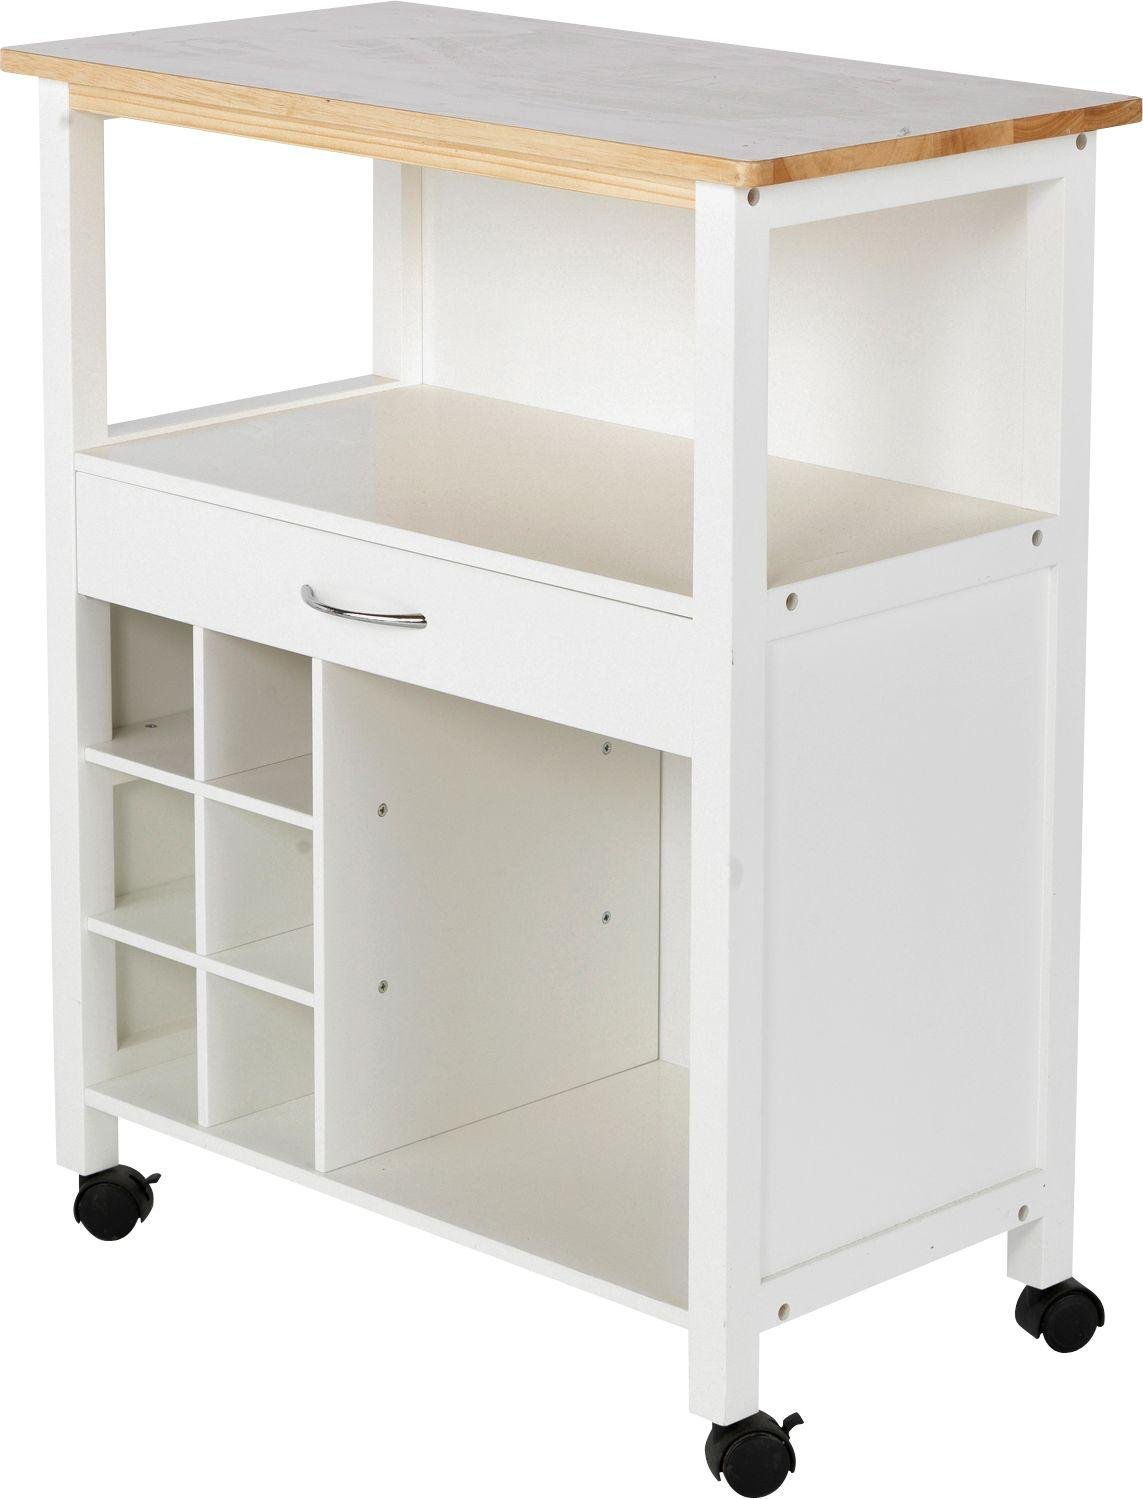 White Kitchen Trolley home kitchen trolley with wine rack white mounted on castors for